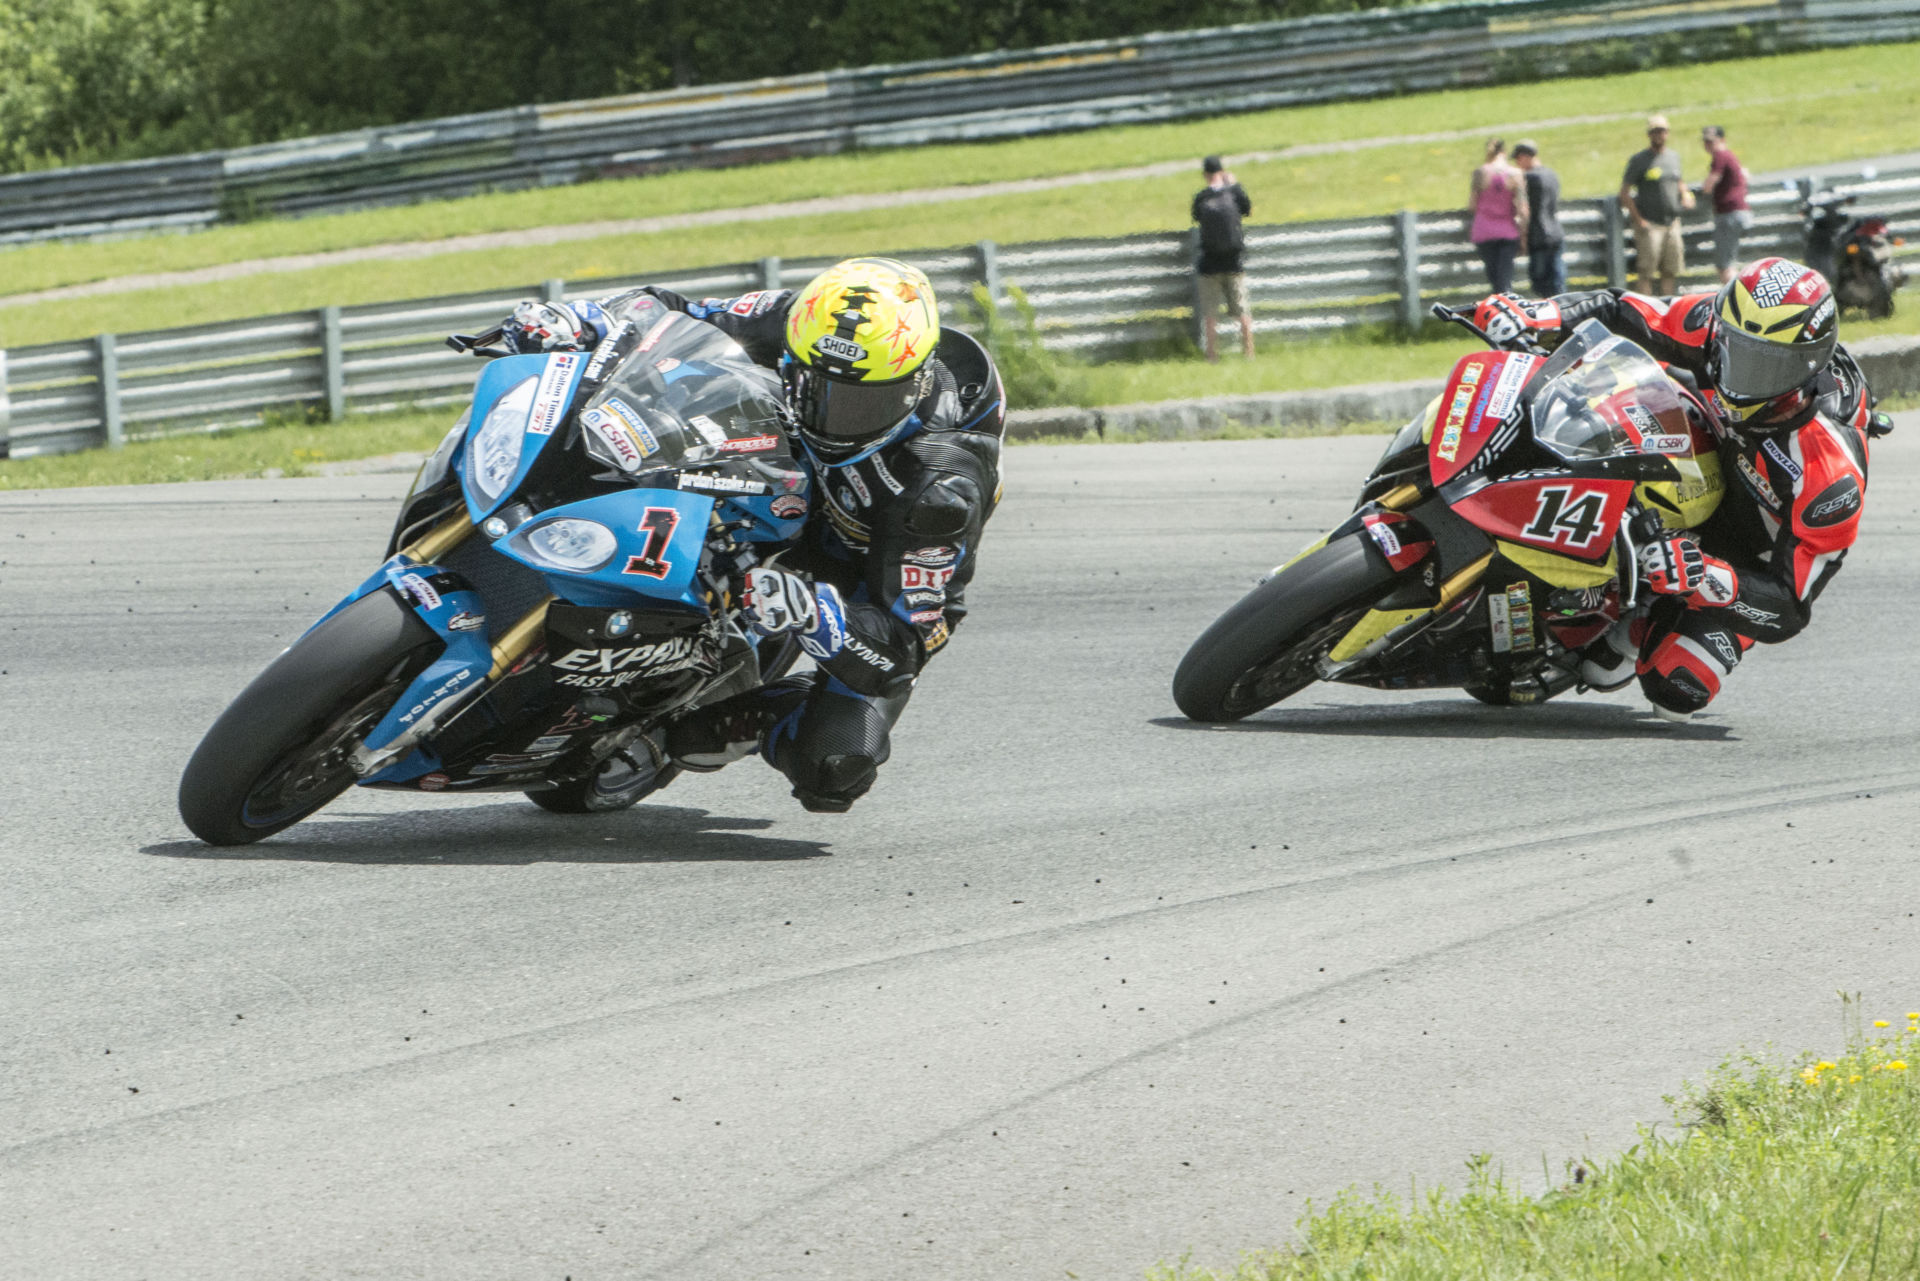 Jordan Szoke (1) leading Samuel Trepanier (14) during a Canadian Superbike race at Atlantic Motorsport Park in 2018. Photo courtesy BMW.